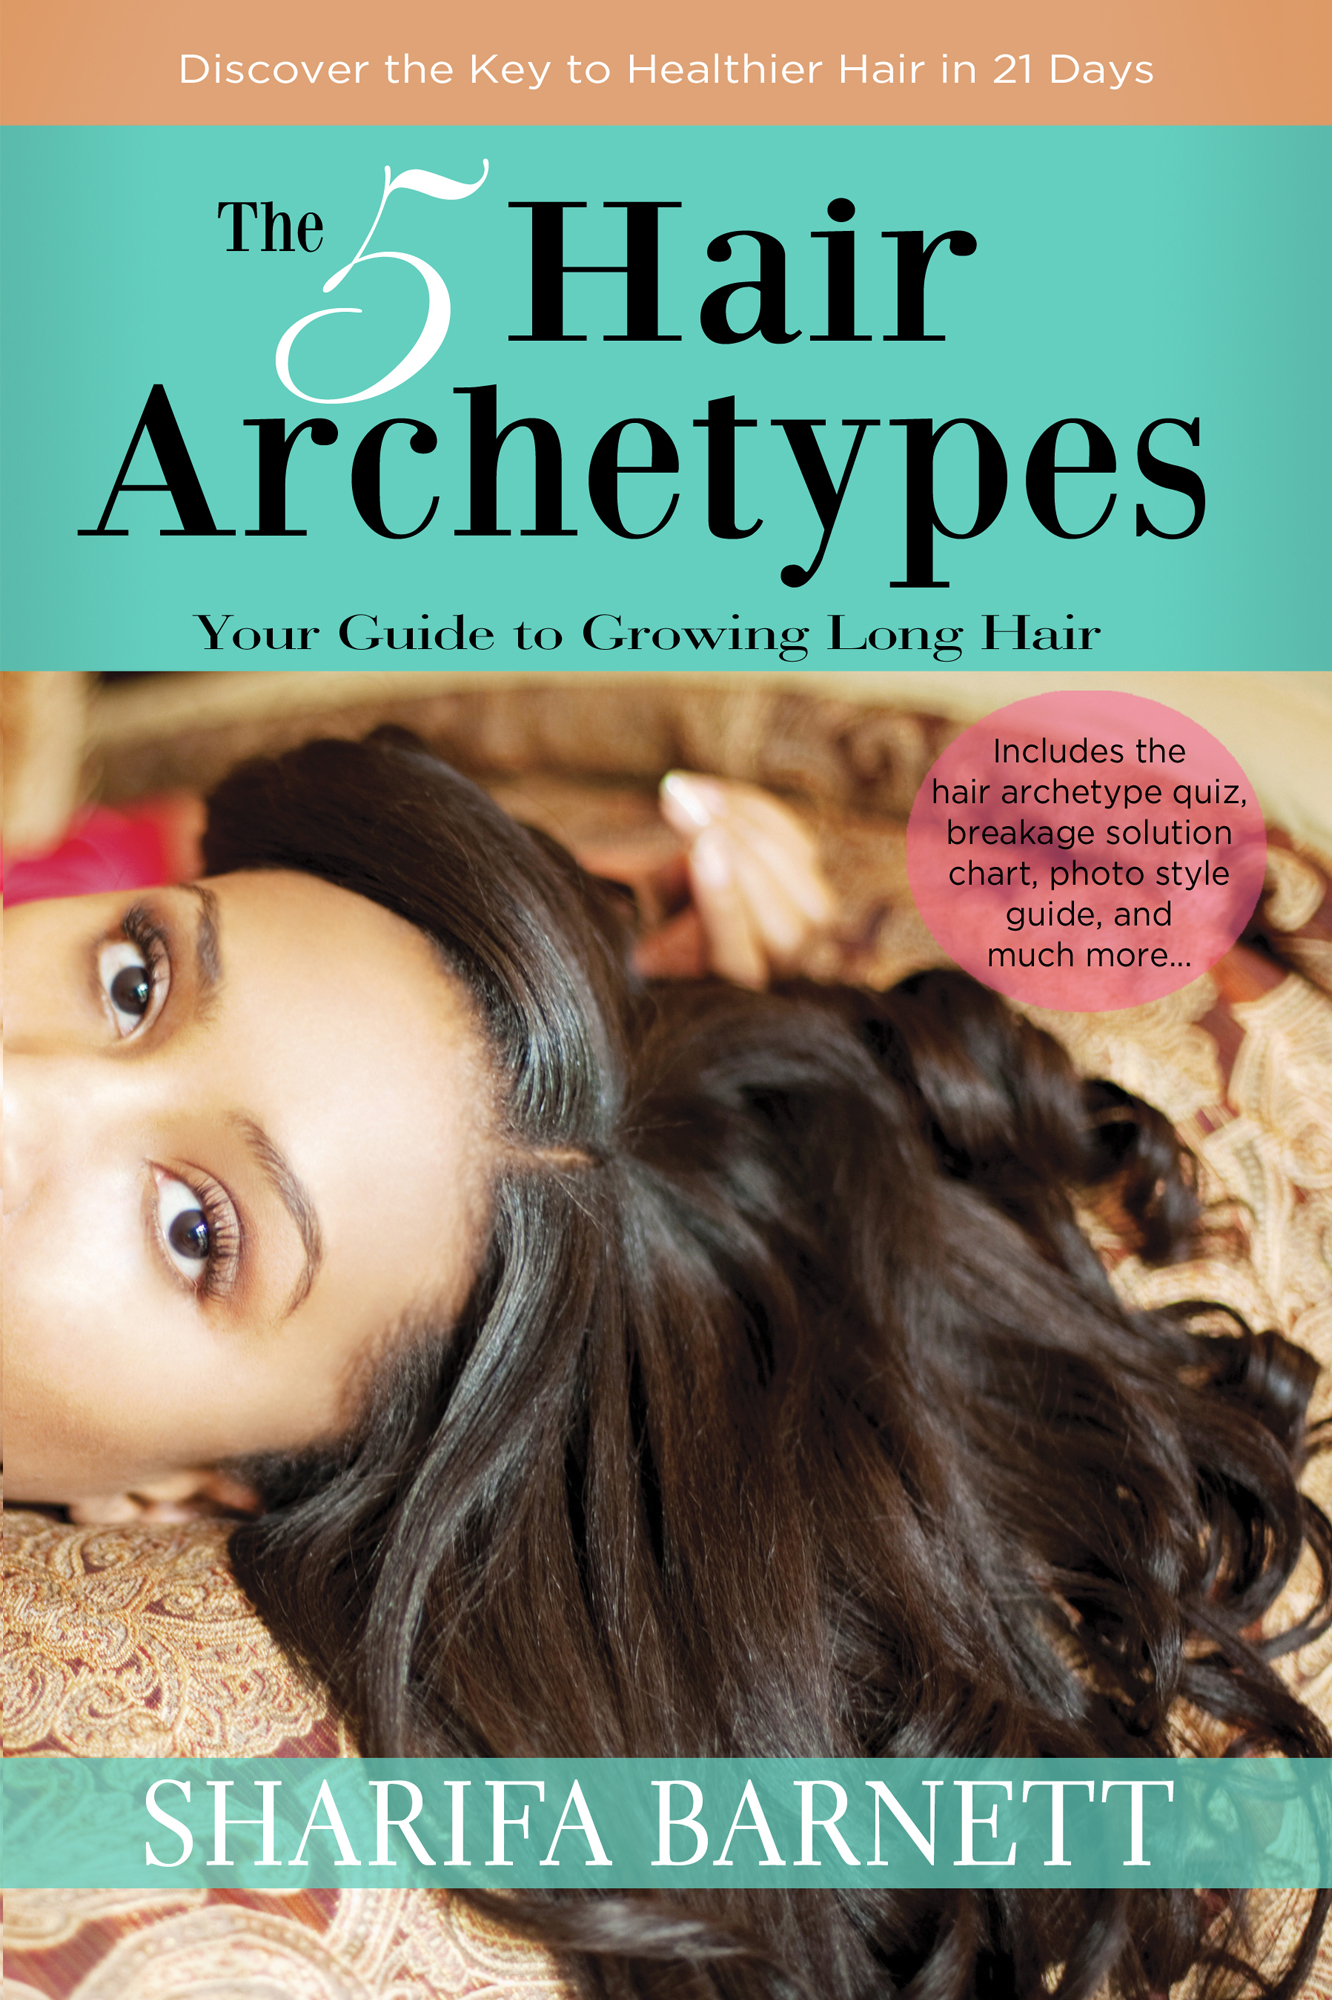 The 5 Hair Archetypes By: Sharifa Barnett